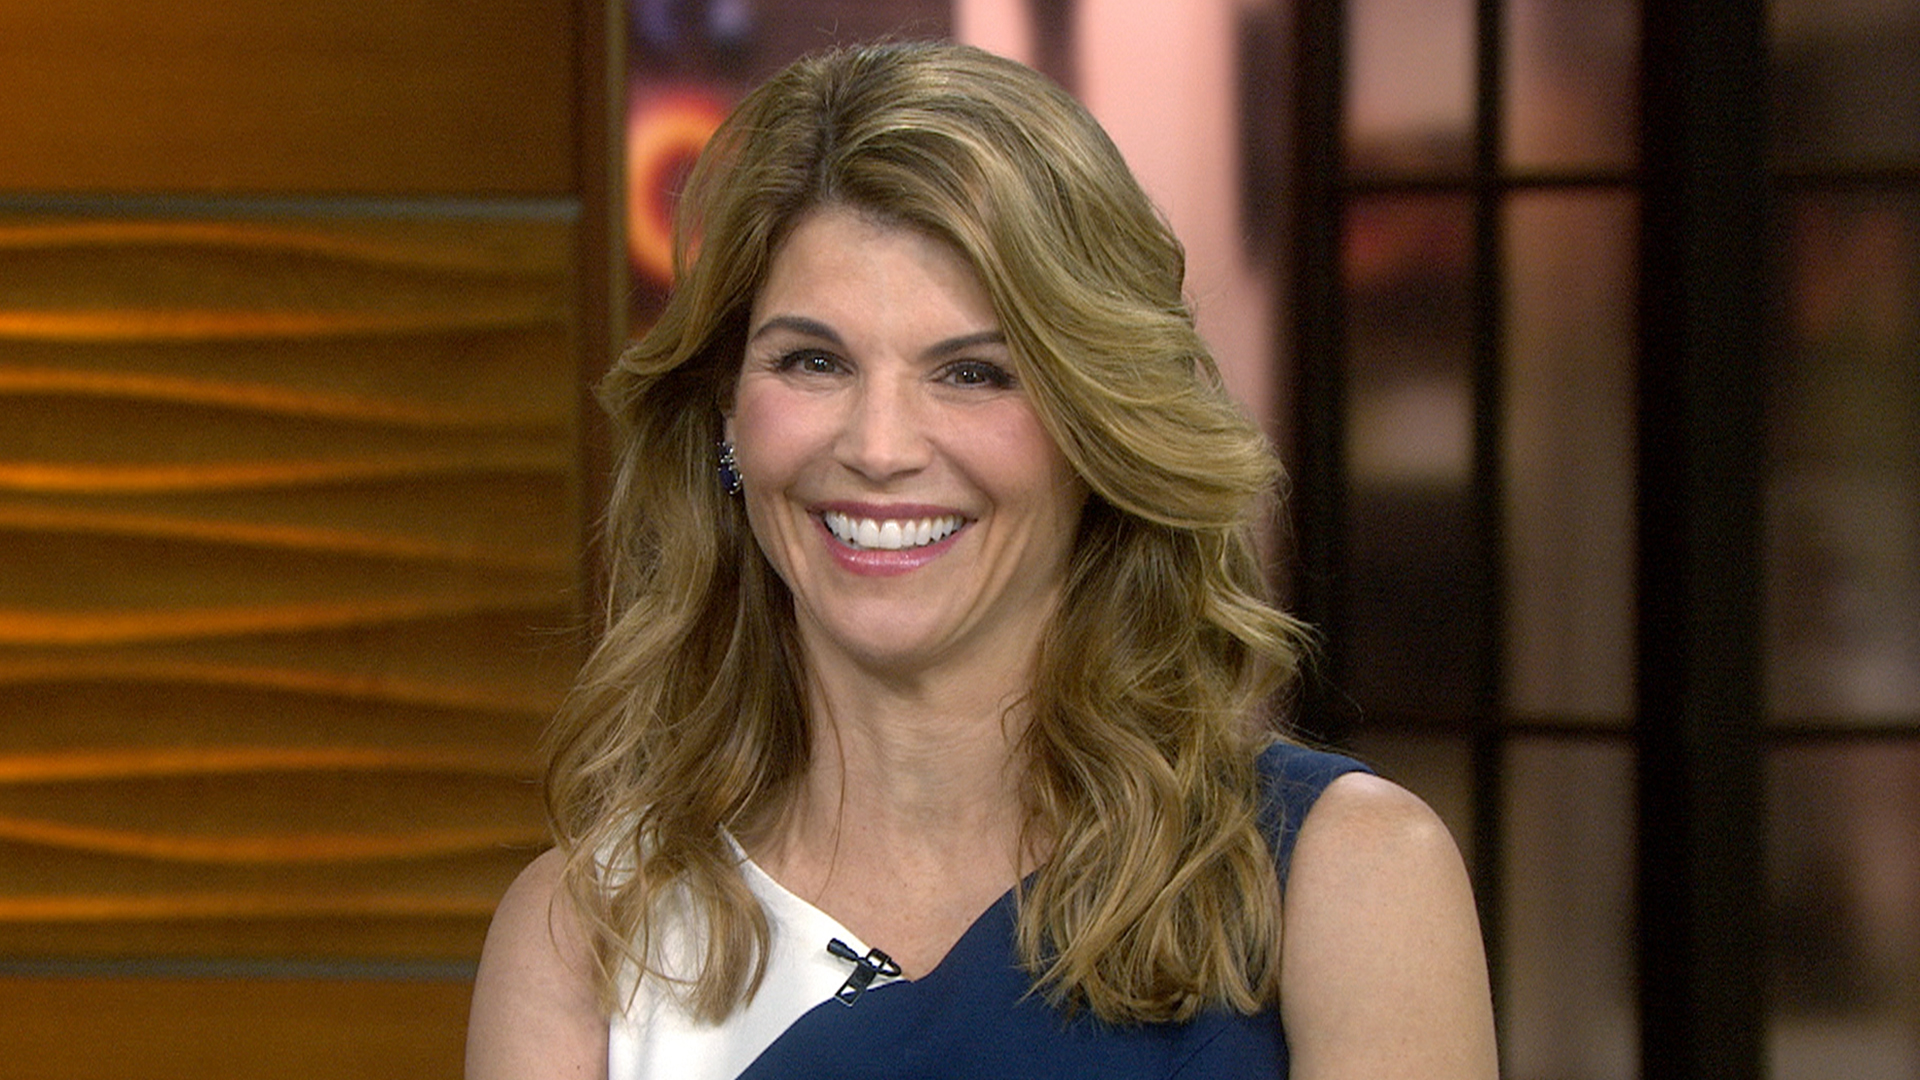 lori loughlin and husbandlori loughlin wiki, lori loughlin and husband, lori loughlin 90210, lori loughlin full house, lori loughlin 2016, lori loughlin facebook, lori loughlin netflix, lori loughlin and john stamos, lori loughlin instagram, lori loughlin and john stamos married, lori loughlin young, lori loughlin net worth, lori loughlin daughters, lori loughlin mossimo giannulli, lori loughlin 2015, lori loughlin plastic surgery, lori loughlin imdb, lori loughlin family, lori loughlin bikini, lori loughlin movies